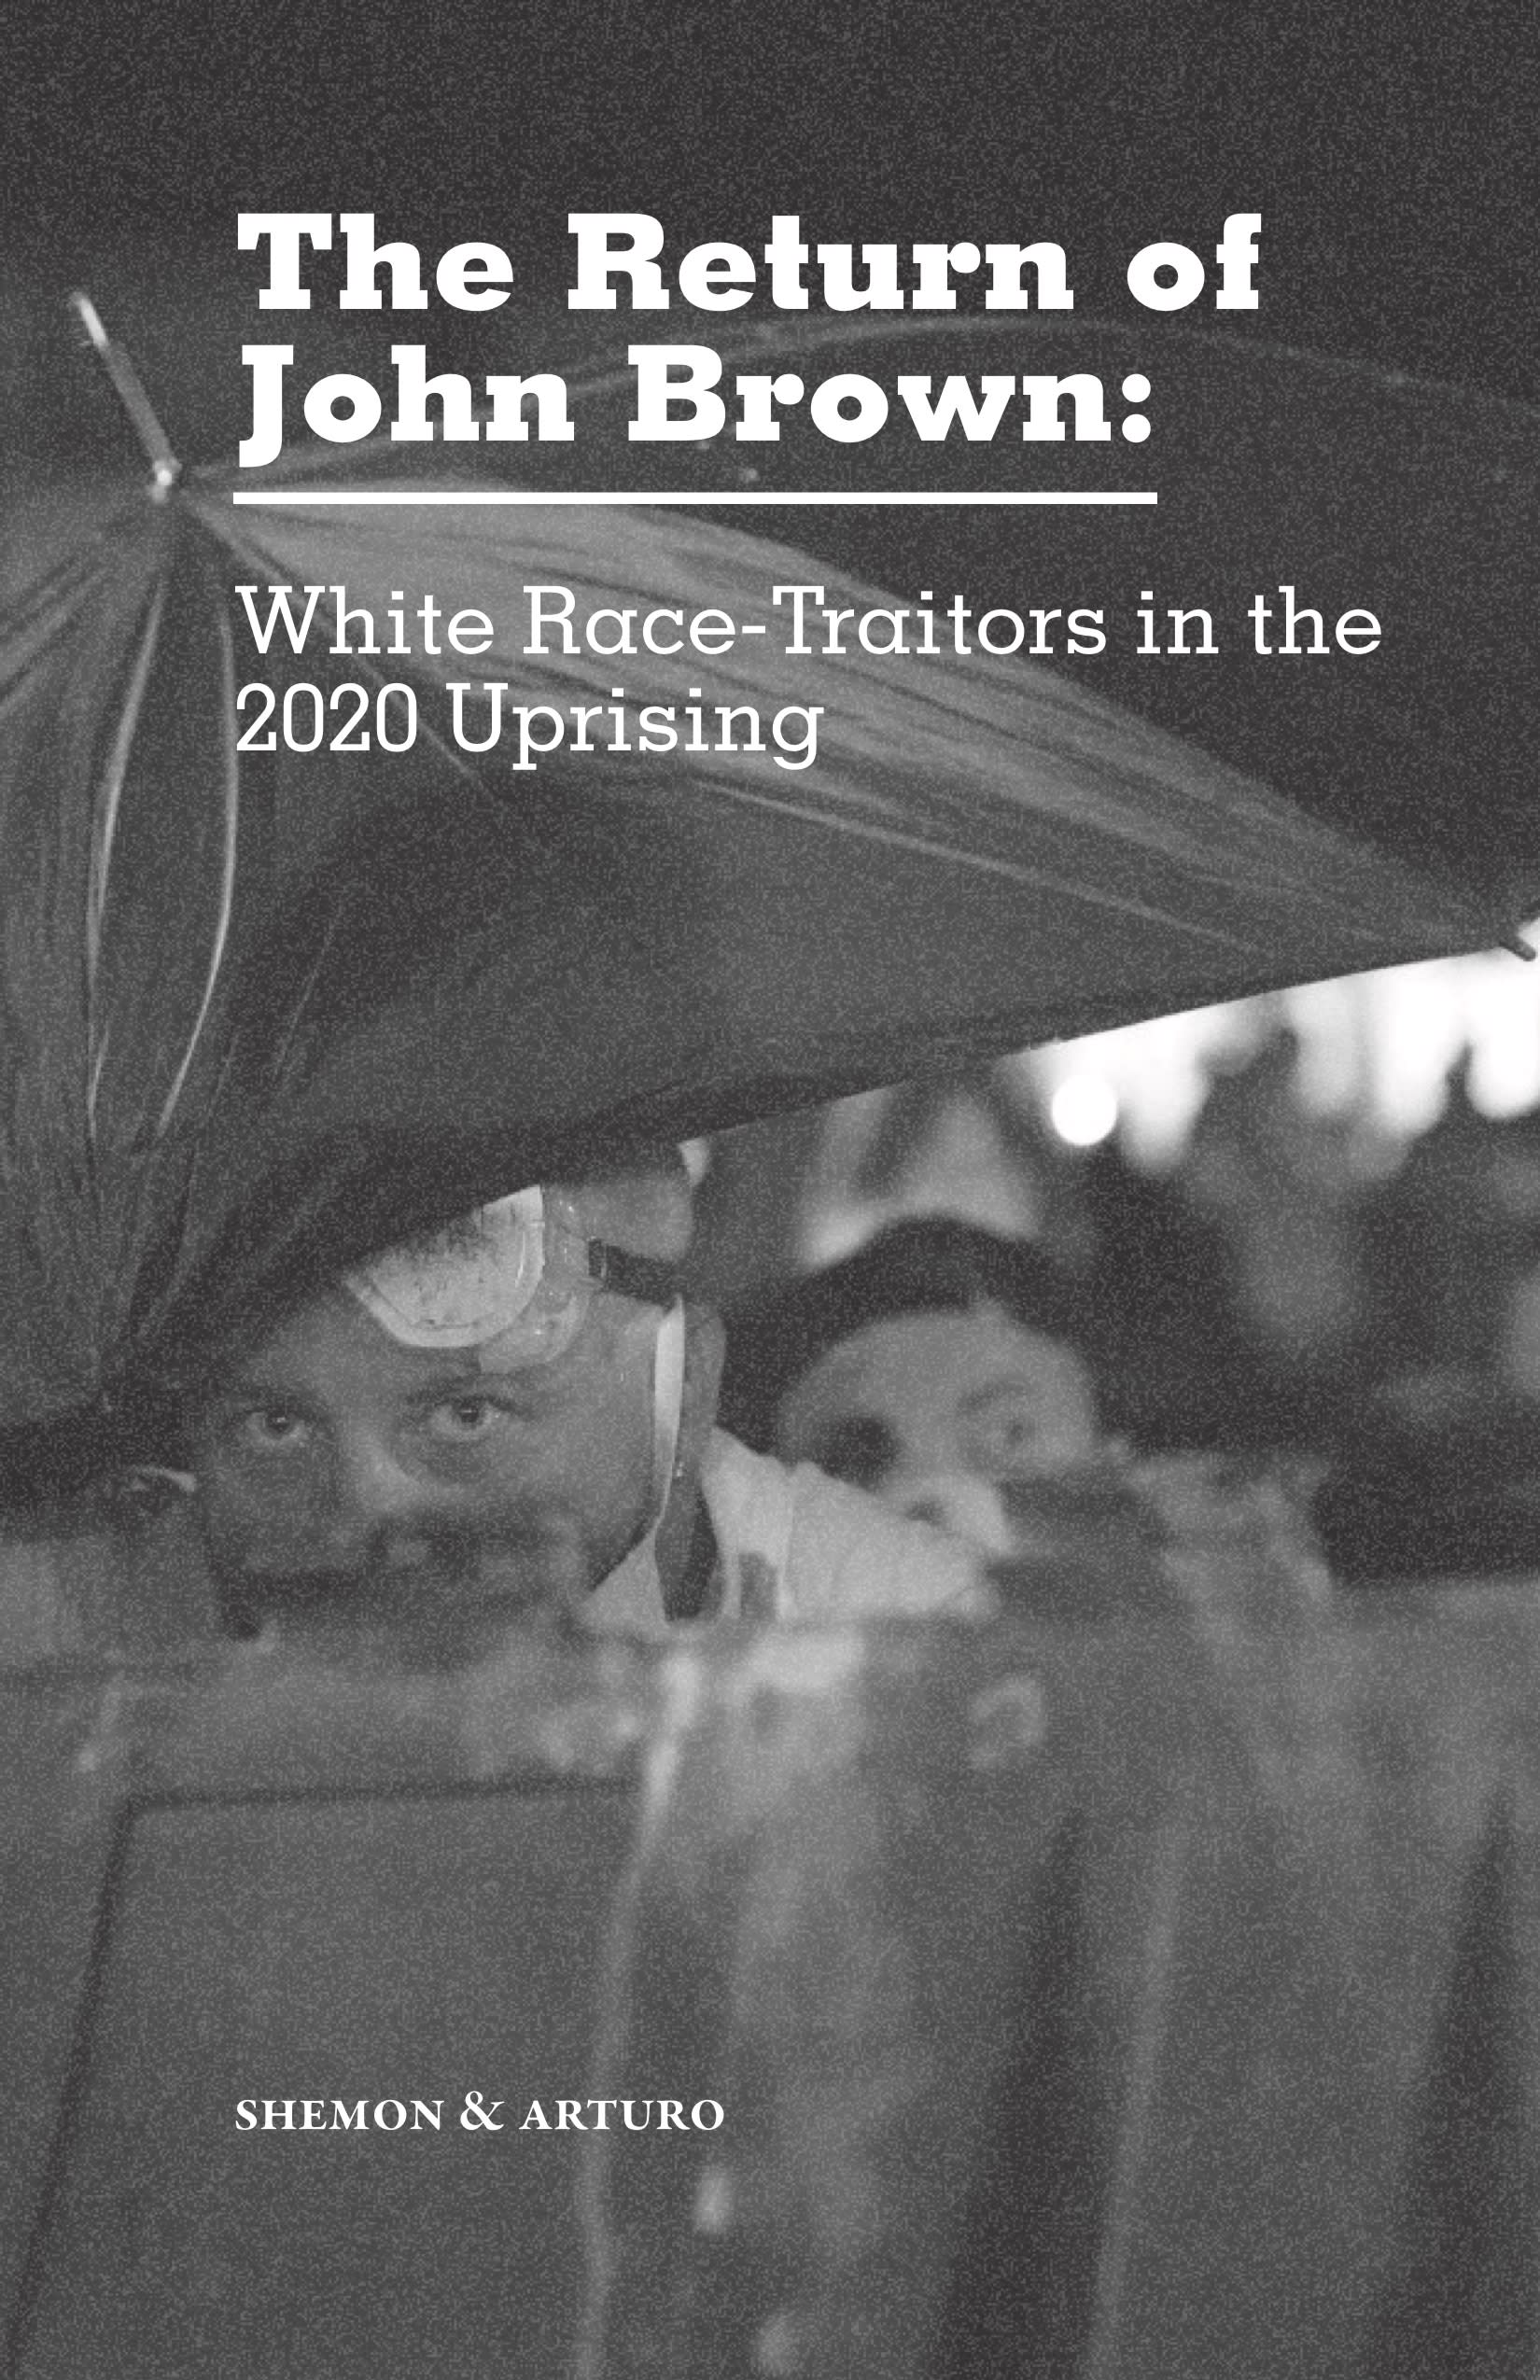 Cover Image for The Return of John-Brown: White Race-Traitors in the 2020 Uprising